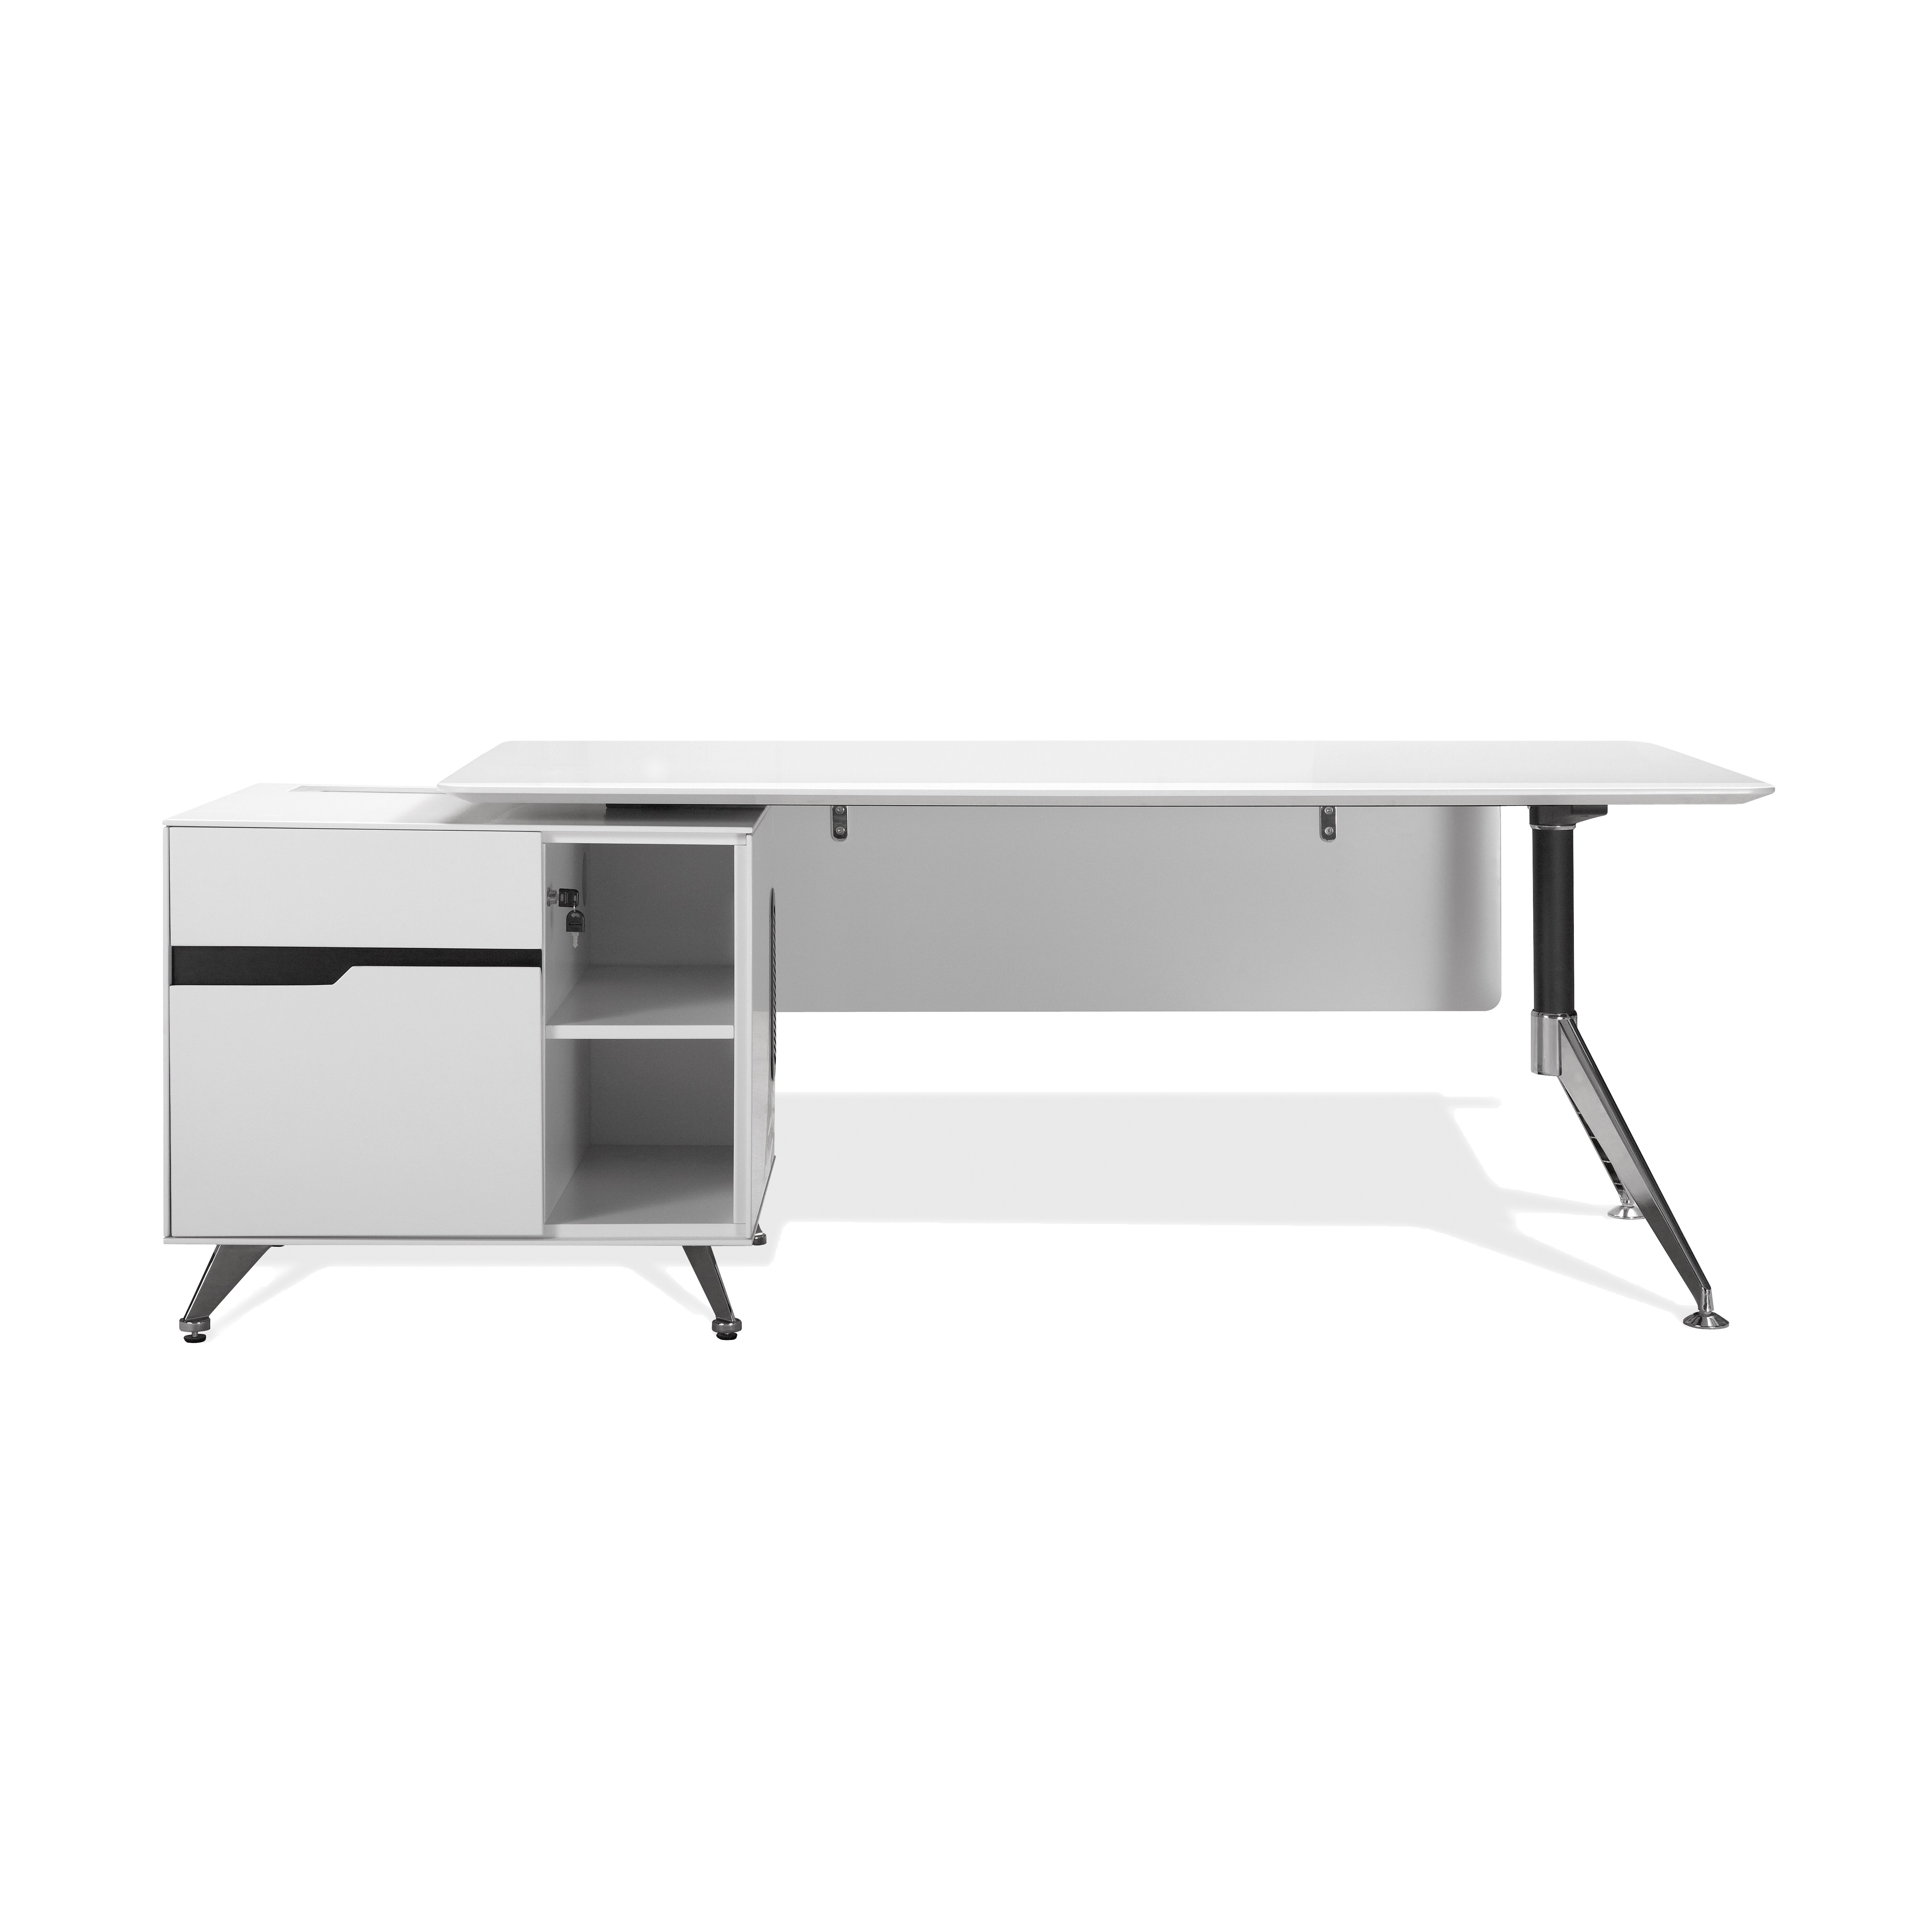 Jesper office 400 collection executive desk reviews wayfair - Jesper office desk ...